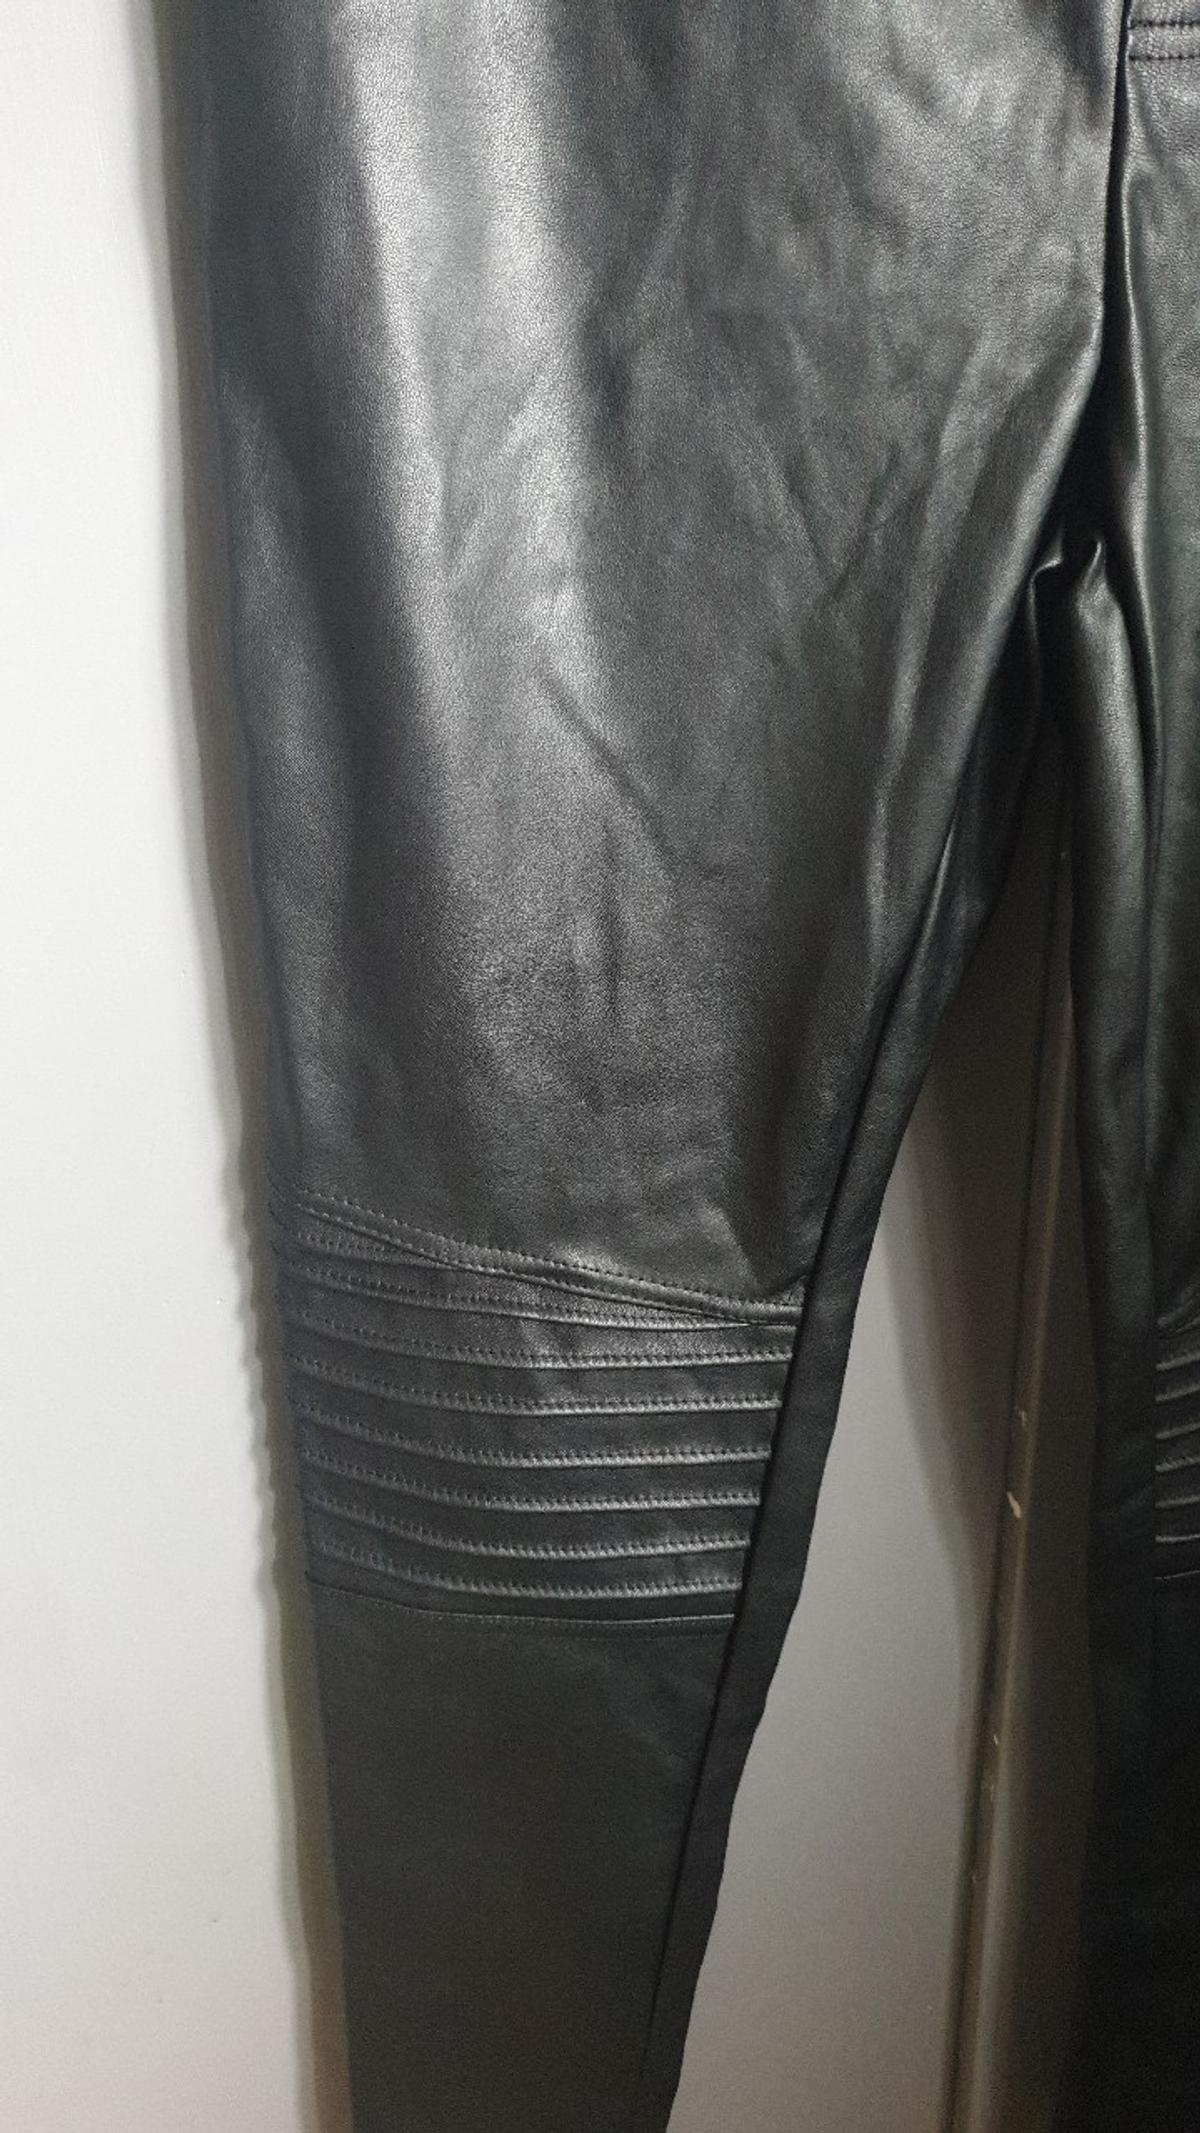 diversified in packaging sale online no sale tax leather look leggings